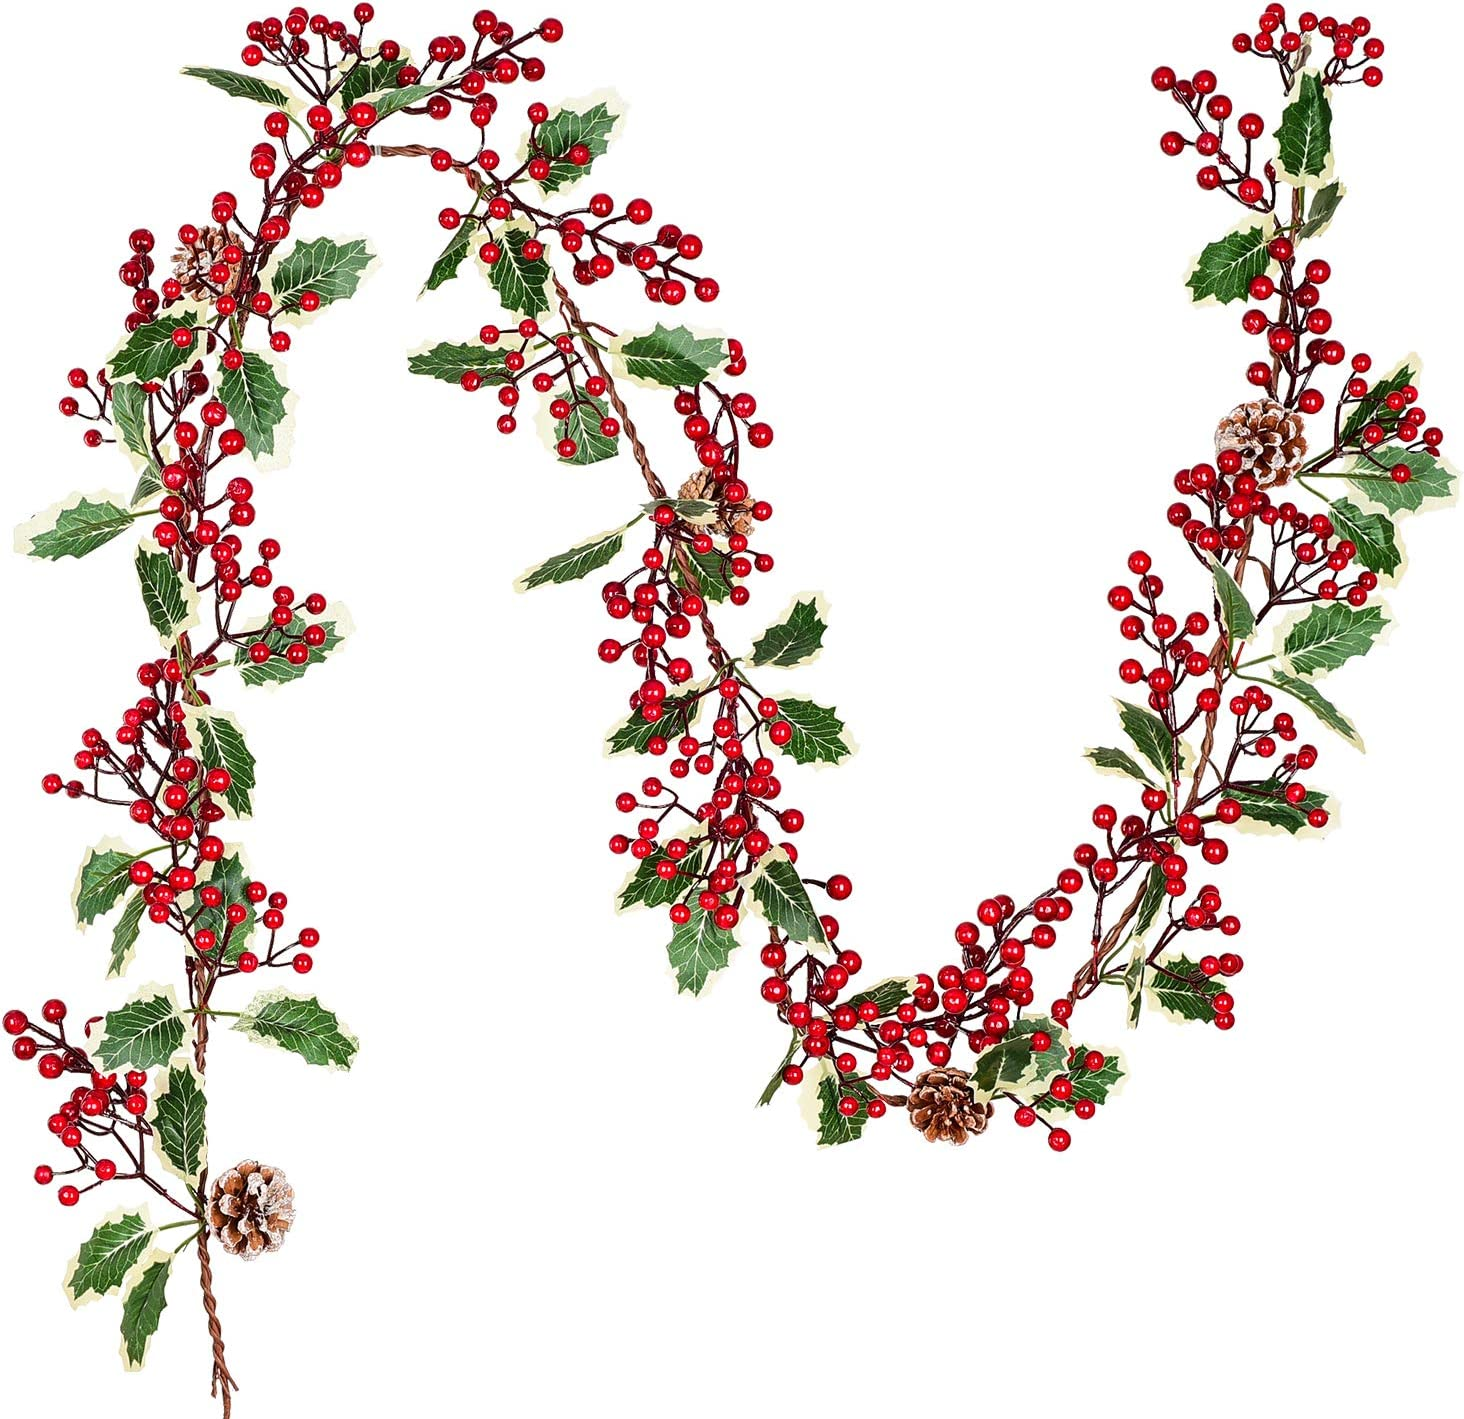 DearHouse 7FT Red Berry Christmas Garland with Pine Cone Garland Artificail Garland Indoor Outdoor Garden Gate Home Decoration Lights for Winter Holiday New Year Decor